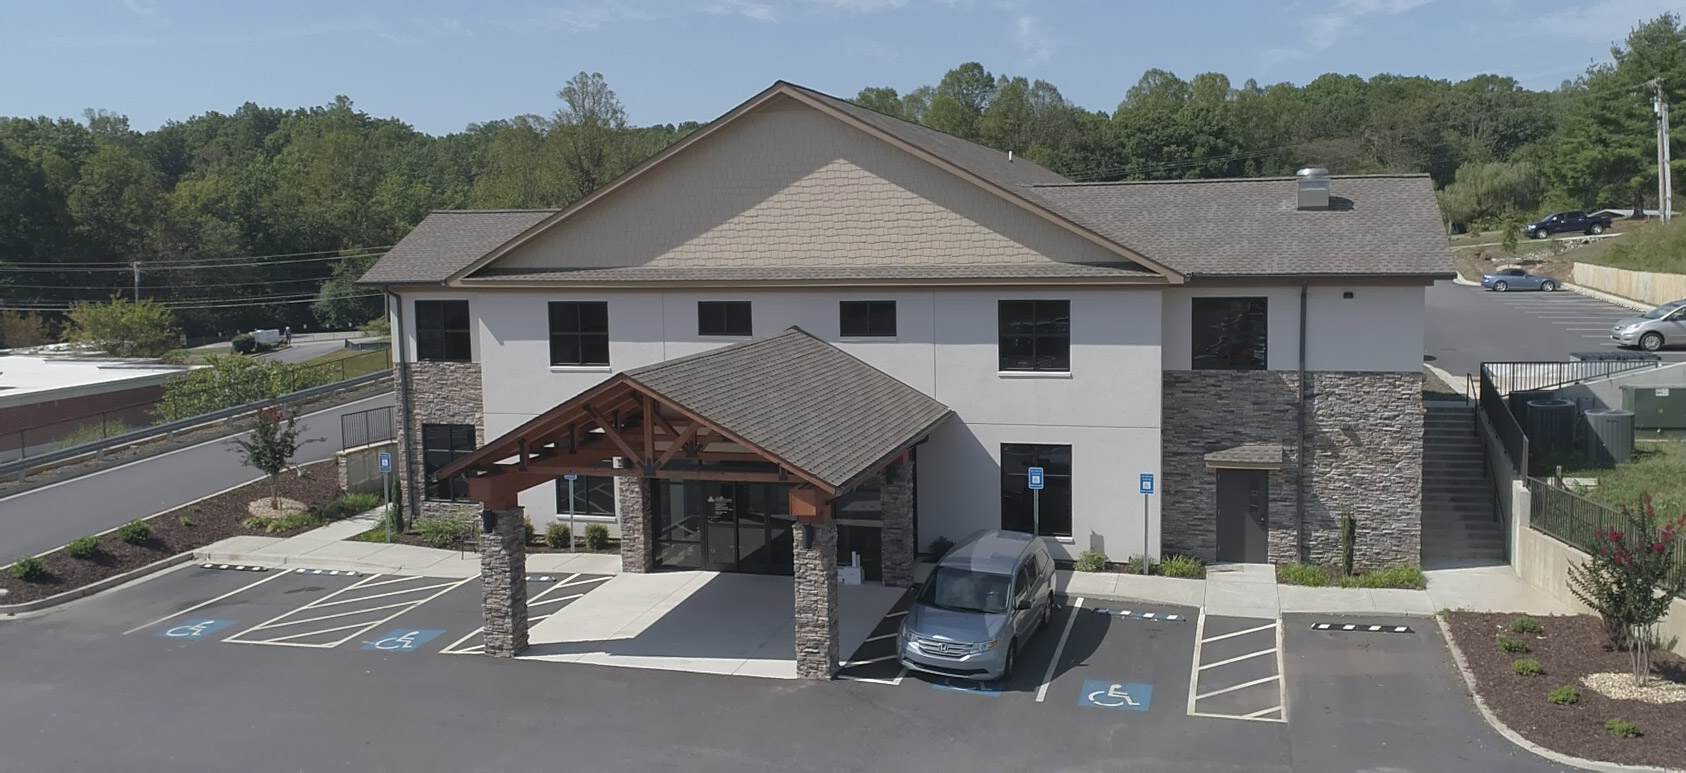 The Heart Center of NGMC - Blairsville